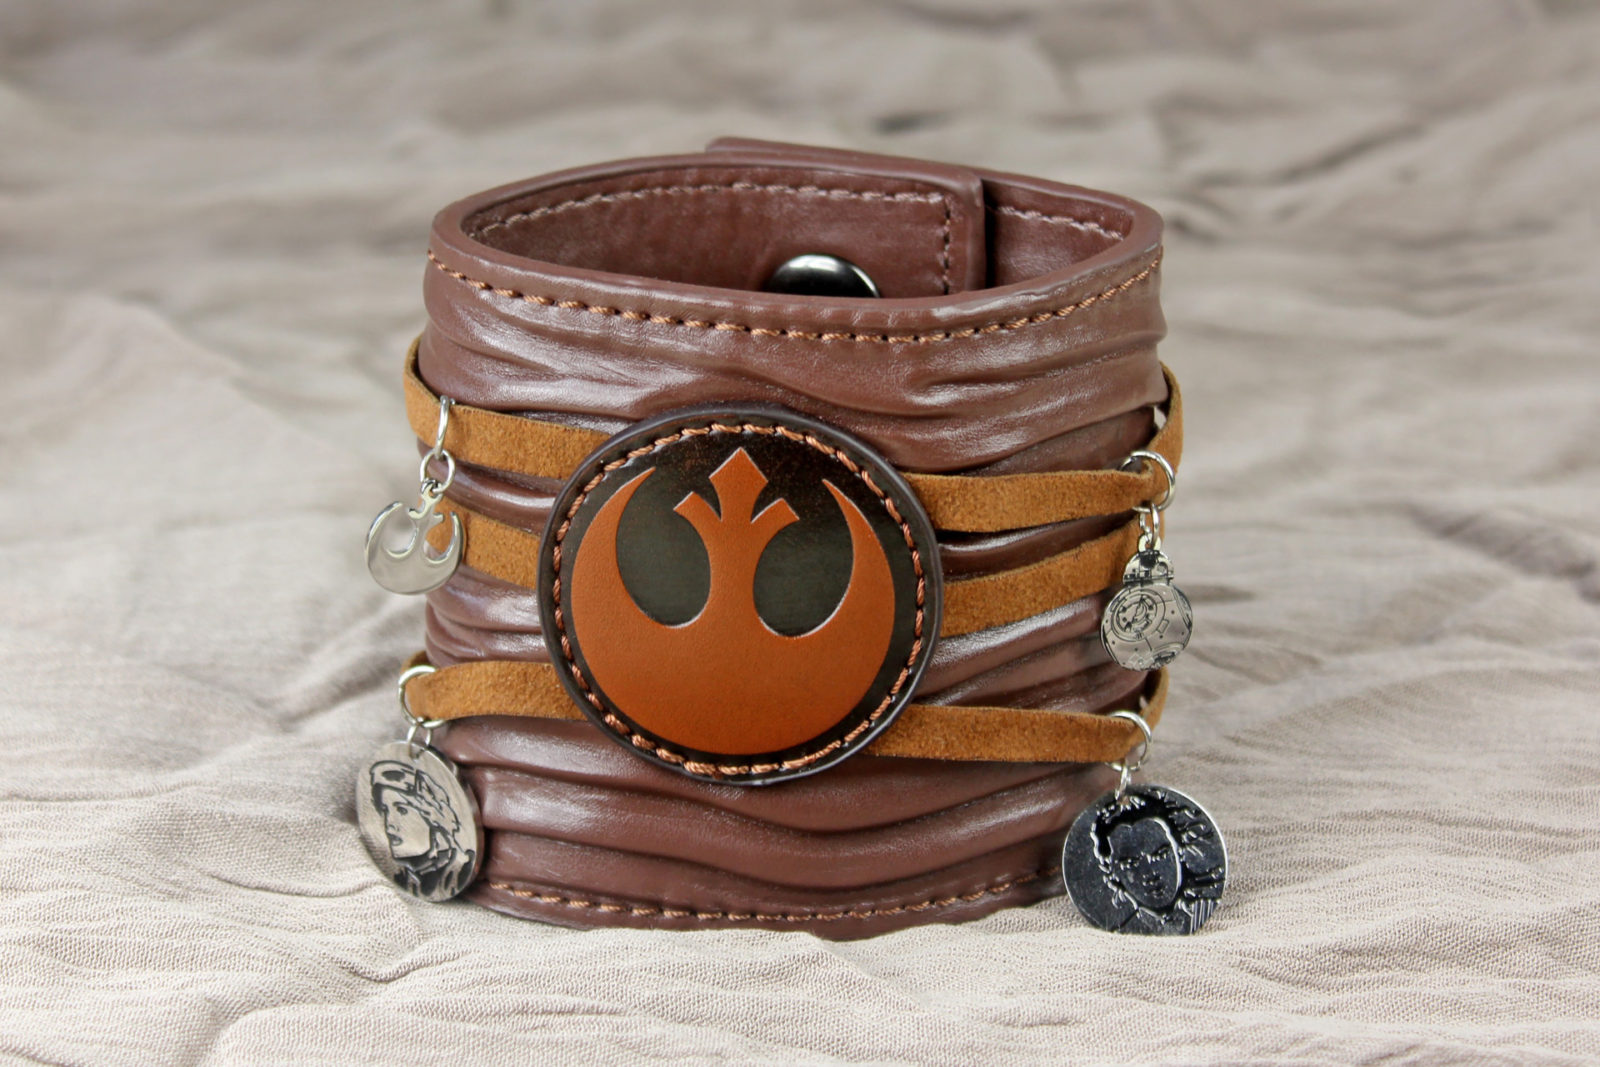 Review – Rey leather cuff bracelet